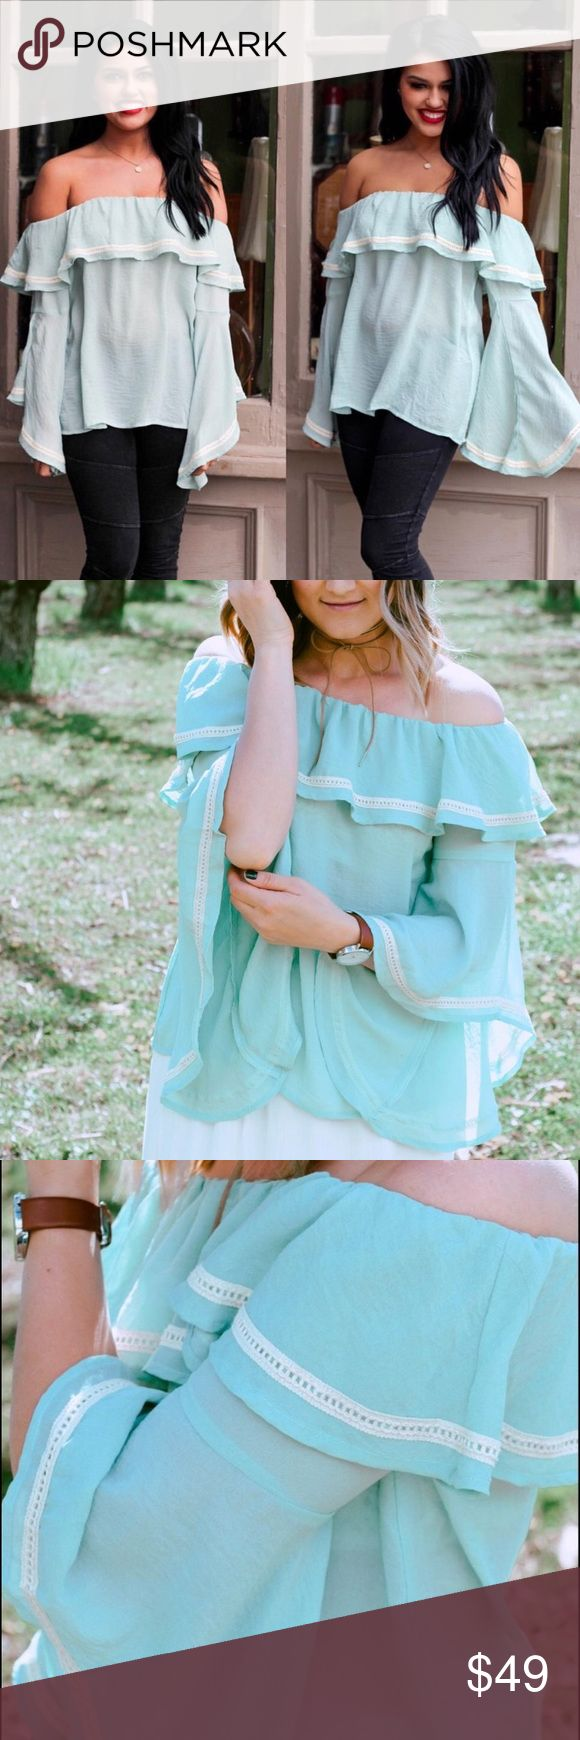 "🌹COMING SOON🌹 Love Me More Mint Top This semi sheer crinkled top is my favorite in this stunning mint color! Features ruffle top and sleeve detail with crochet trimming. One medium & one large. Preorder now! Bust: M - 42"", L - 46"" Length: M - 19"", L - 20"". (NOT Anthropologie, just tagging brand for exposure.) Anthropologie Tops"